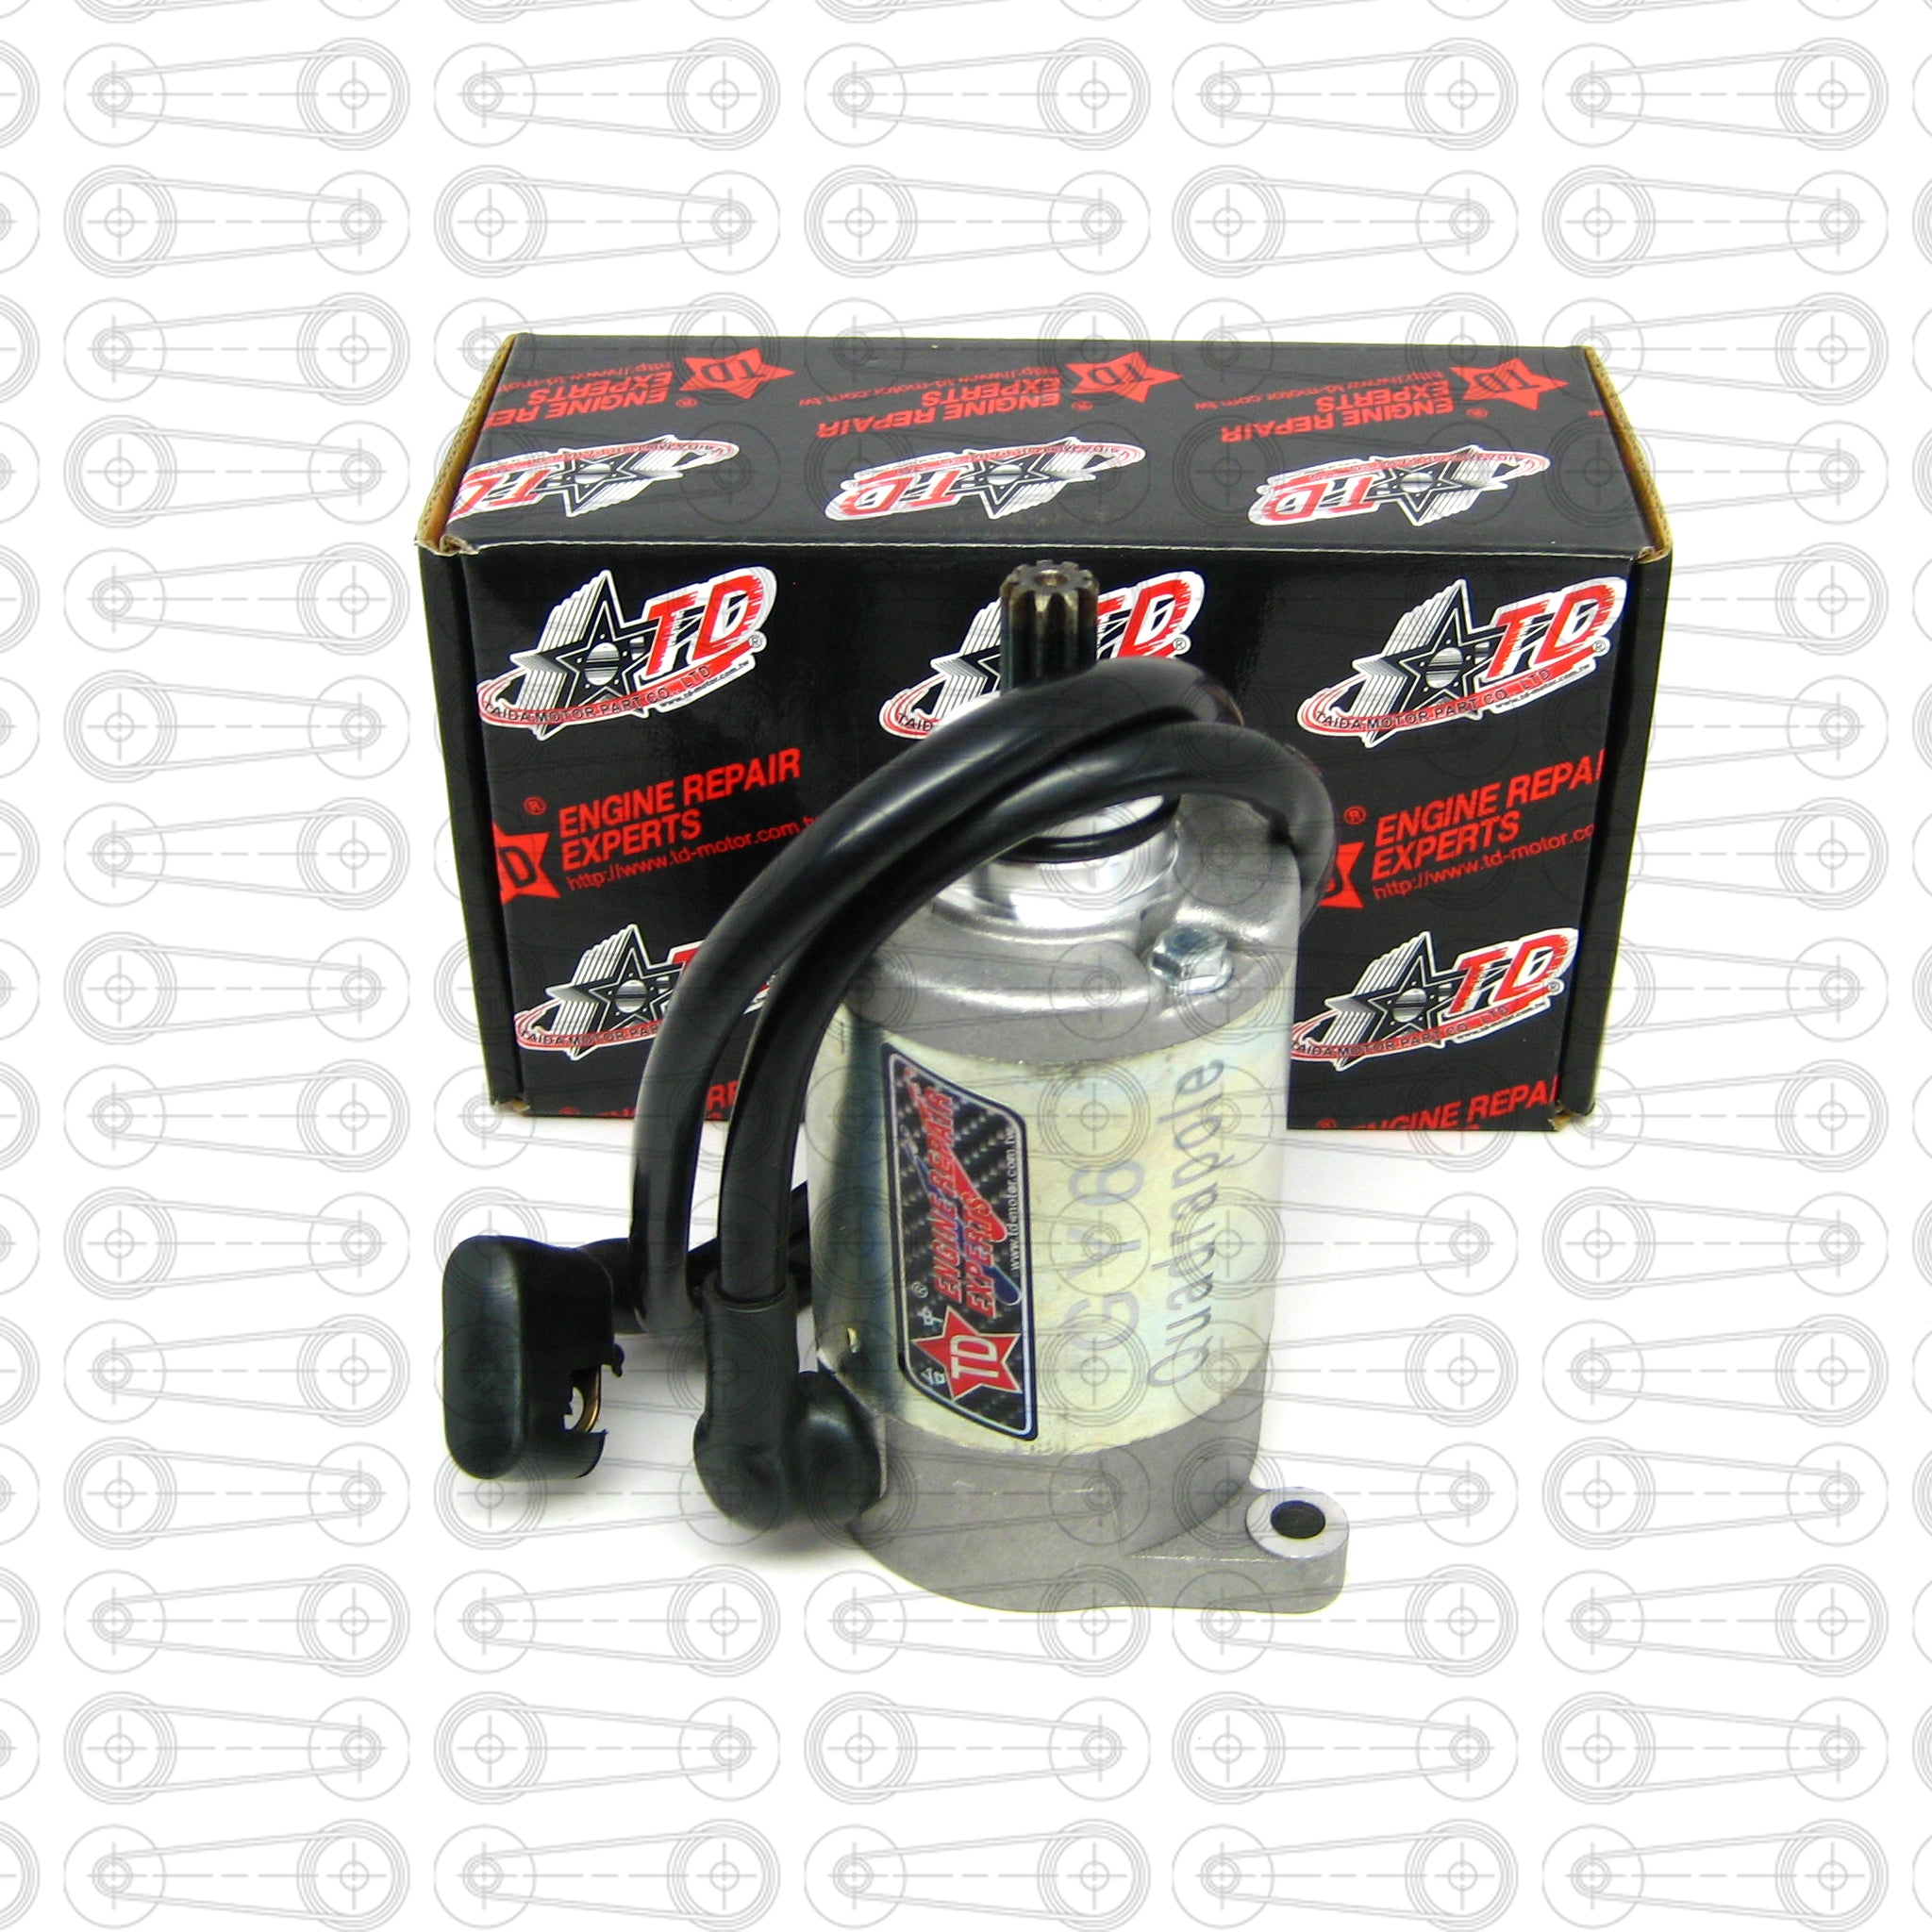 TAIDA - QUADRUPLE HIGH TORQUE STARTER (GY6)